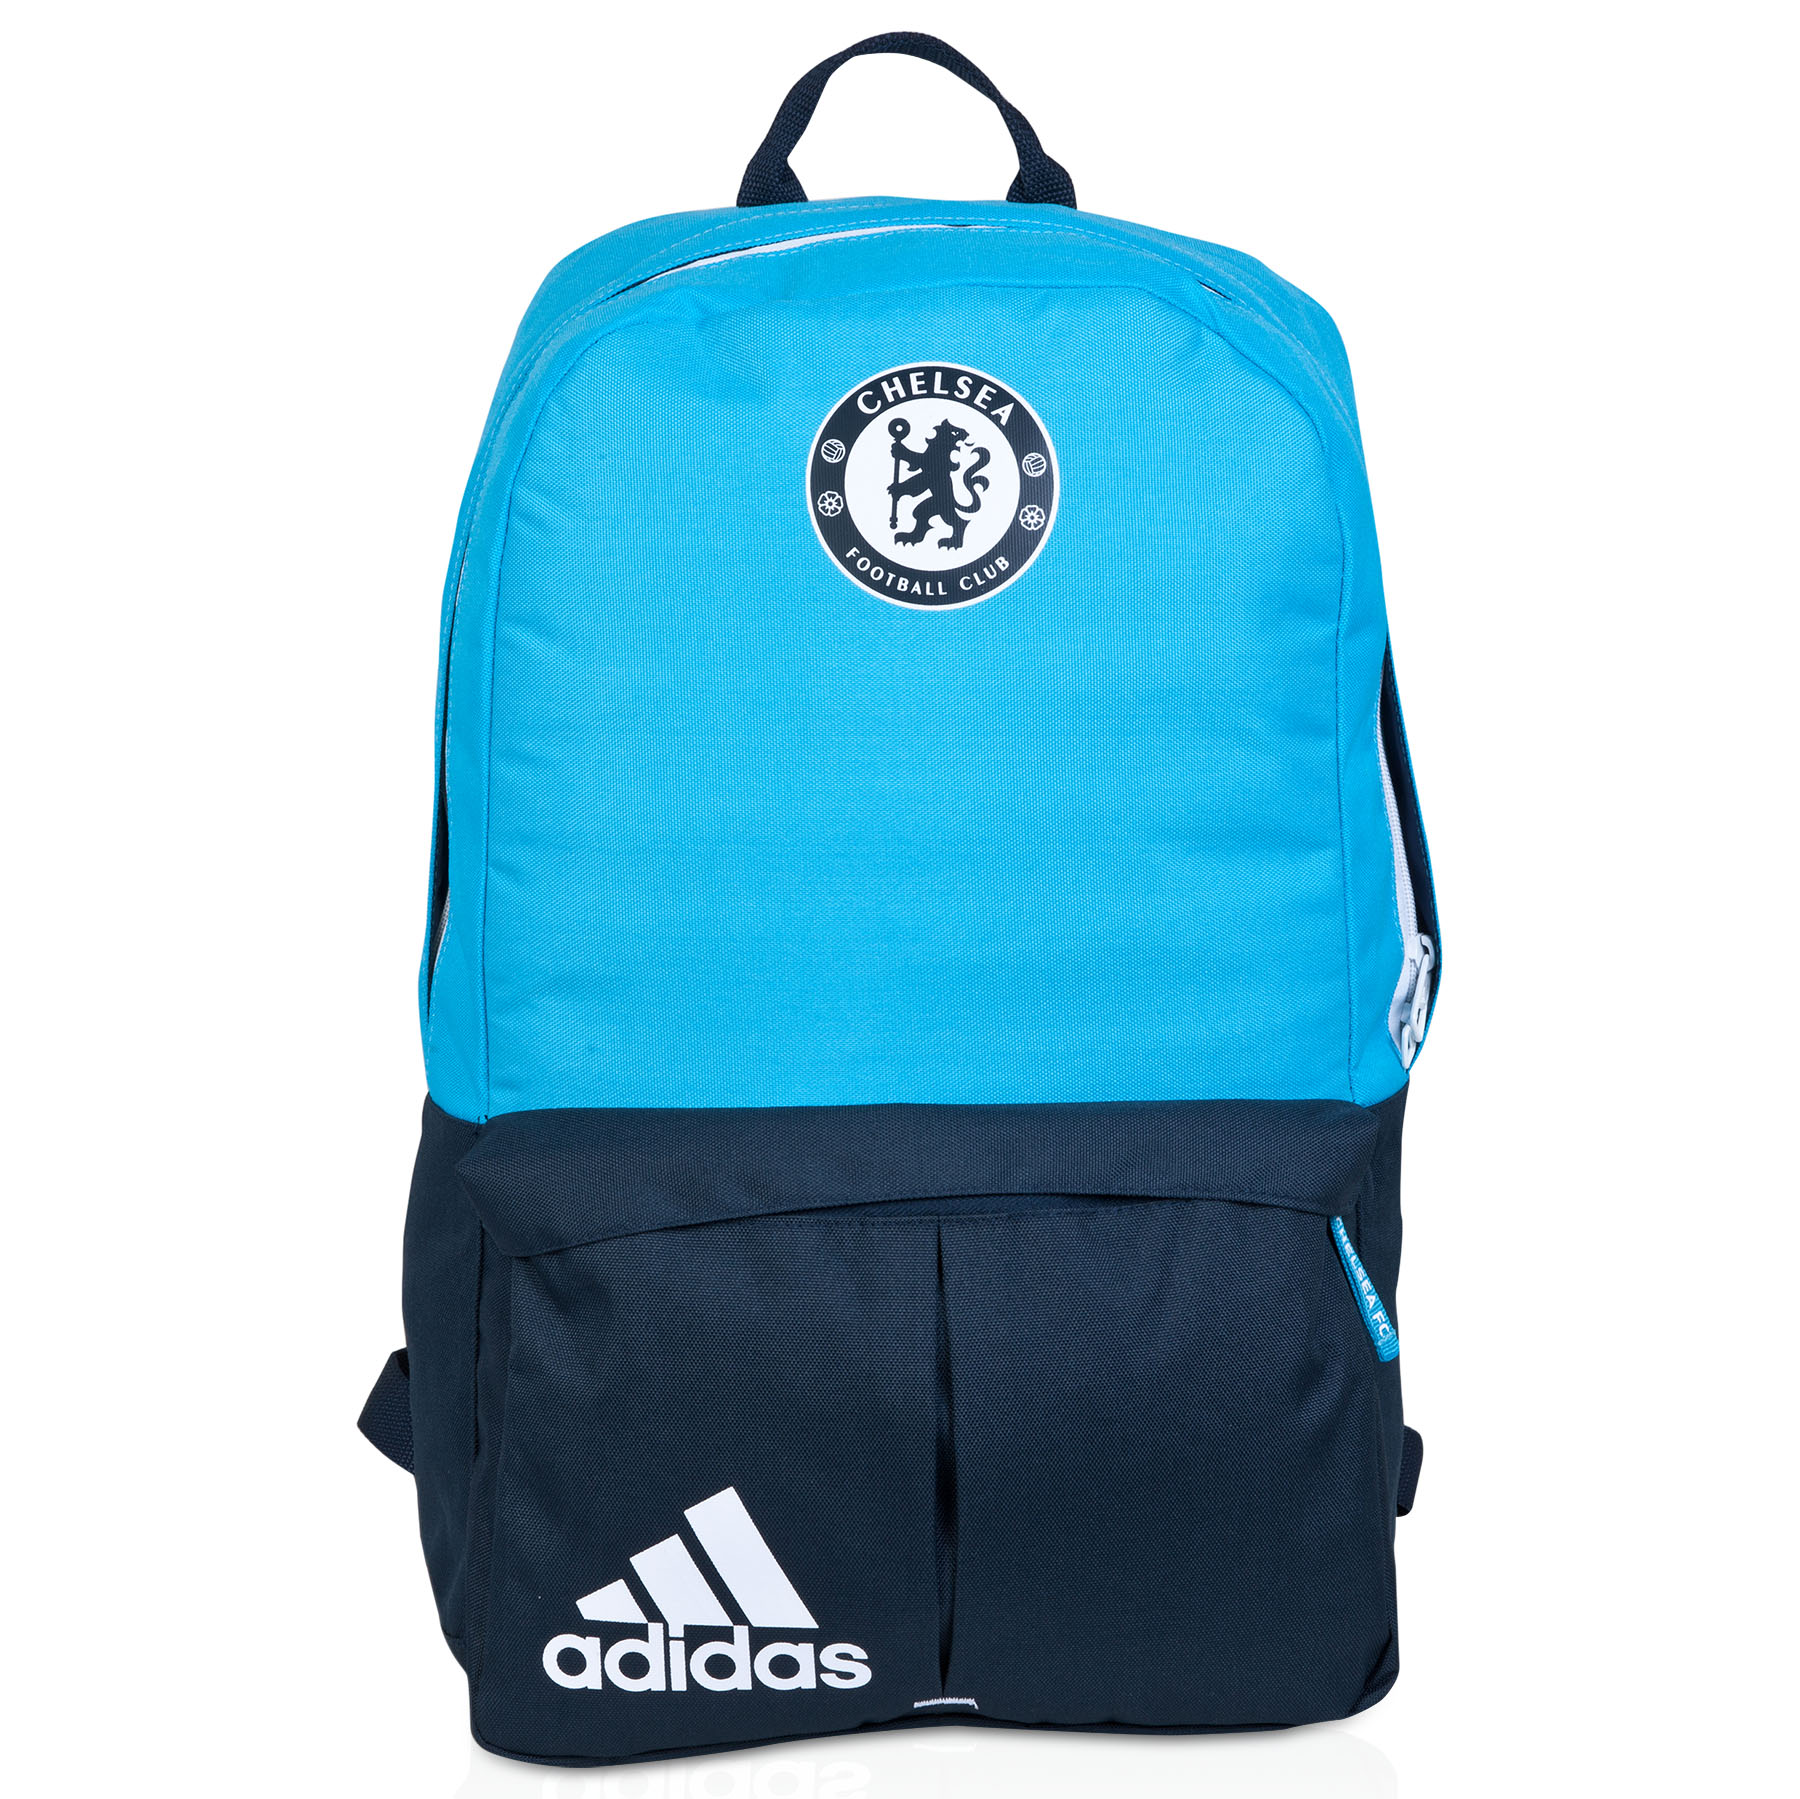 Chelsea Backpack